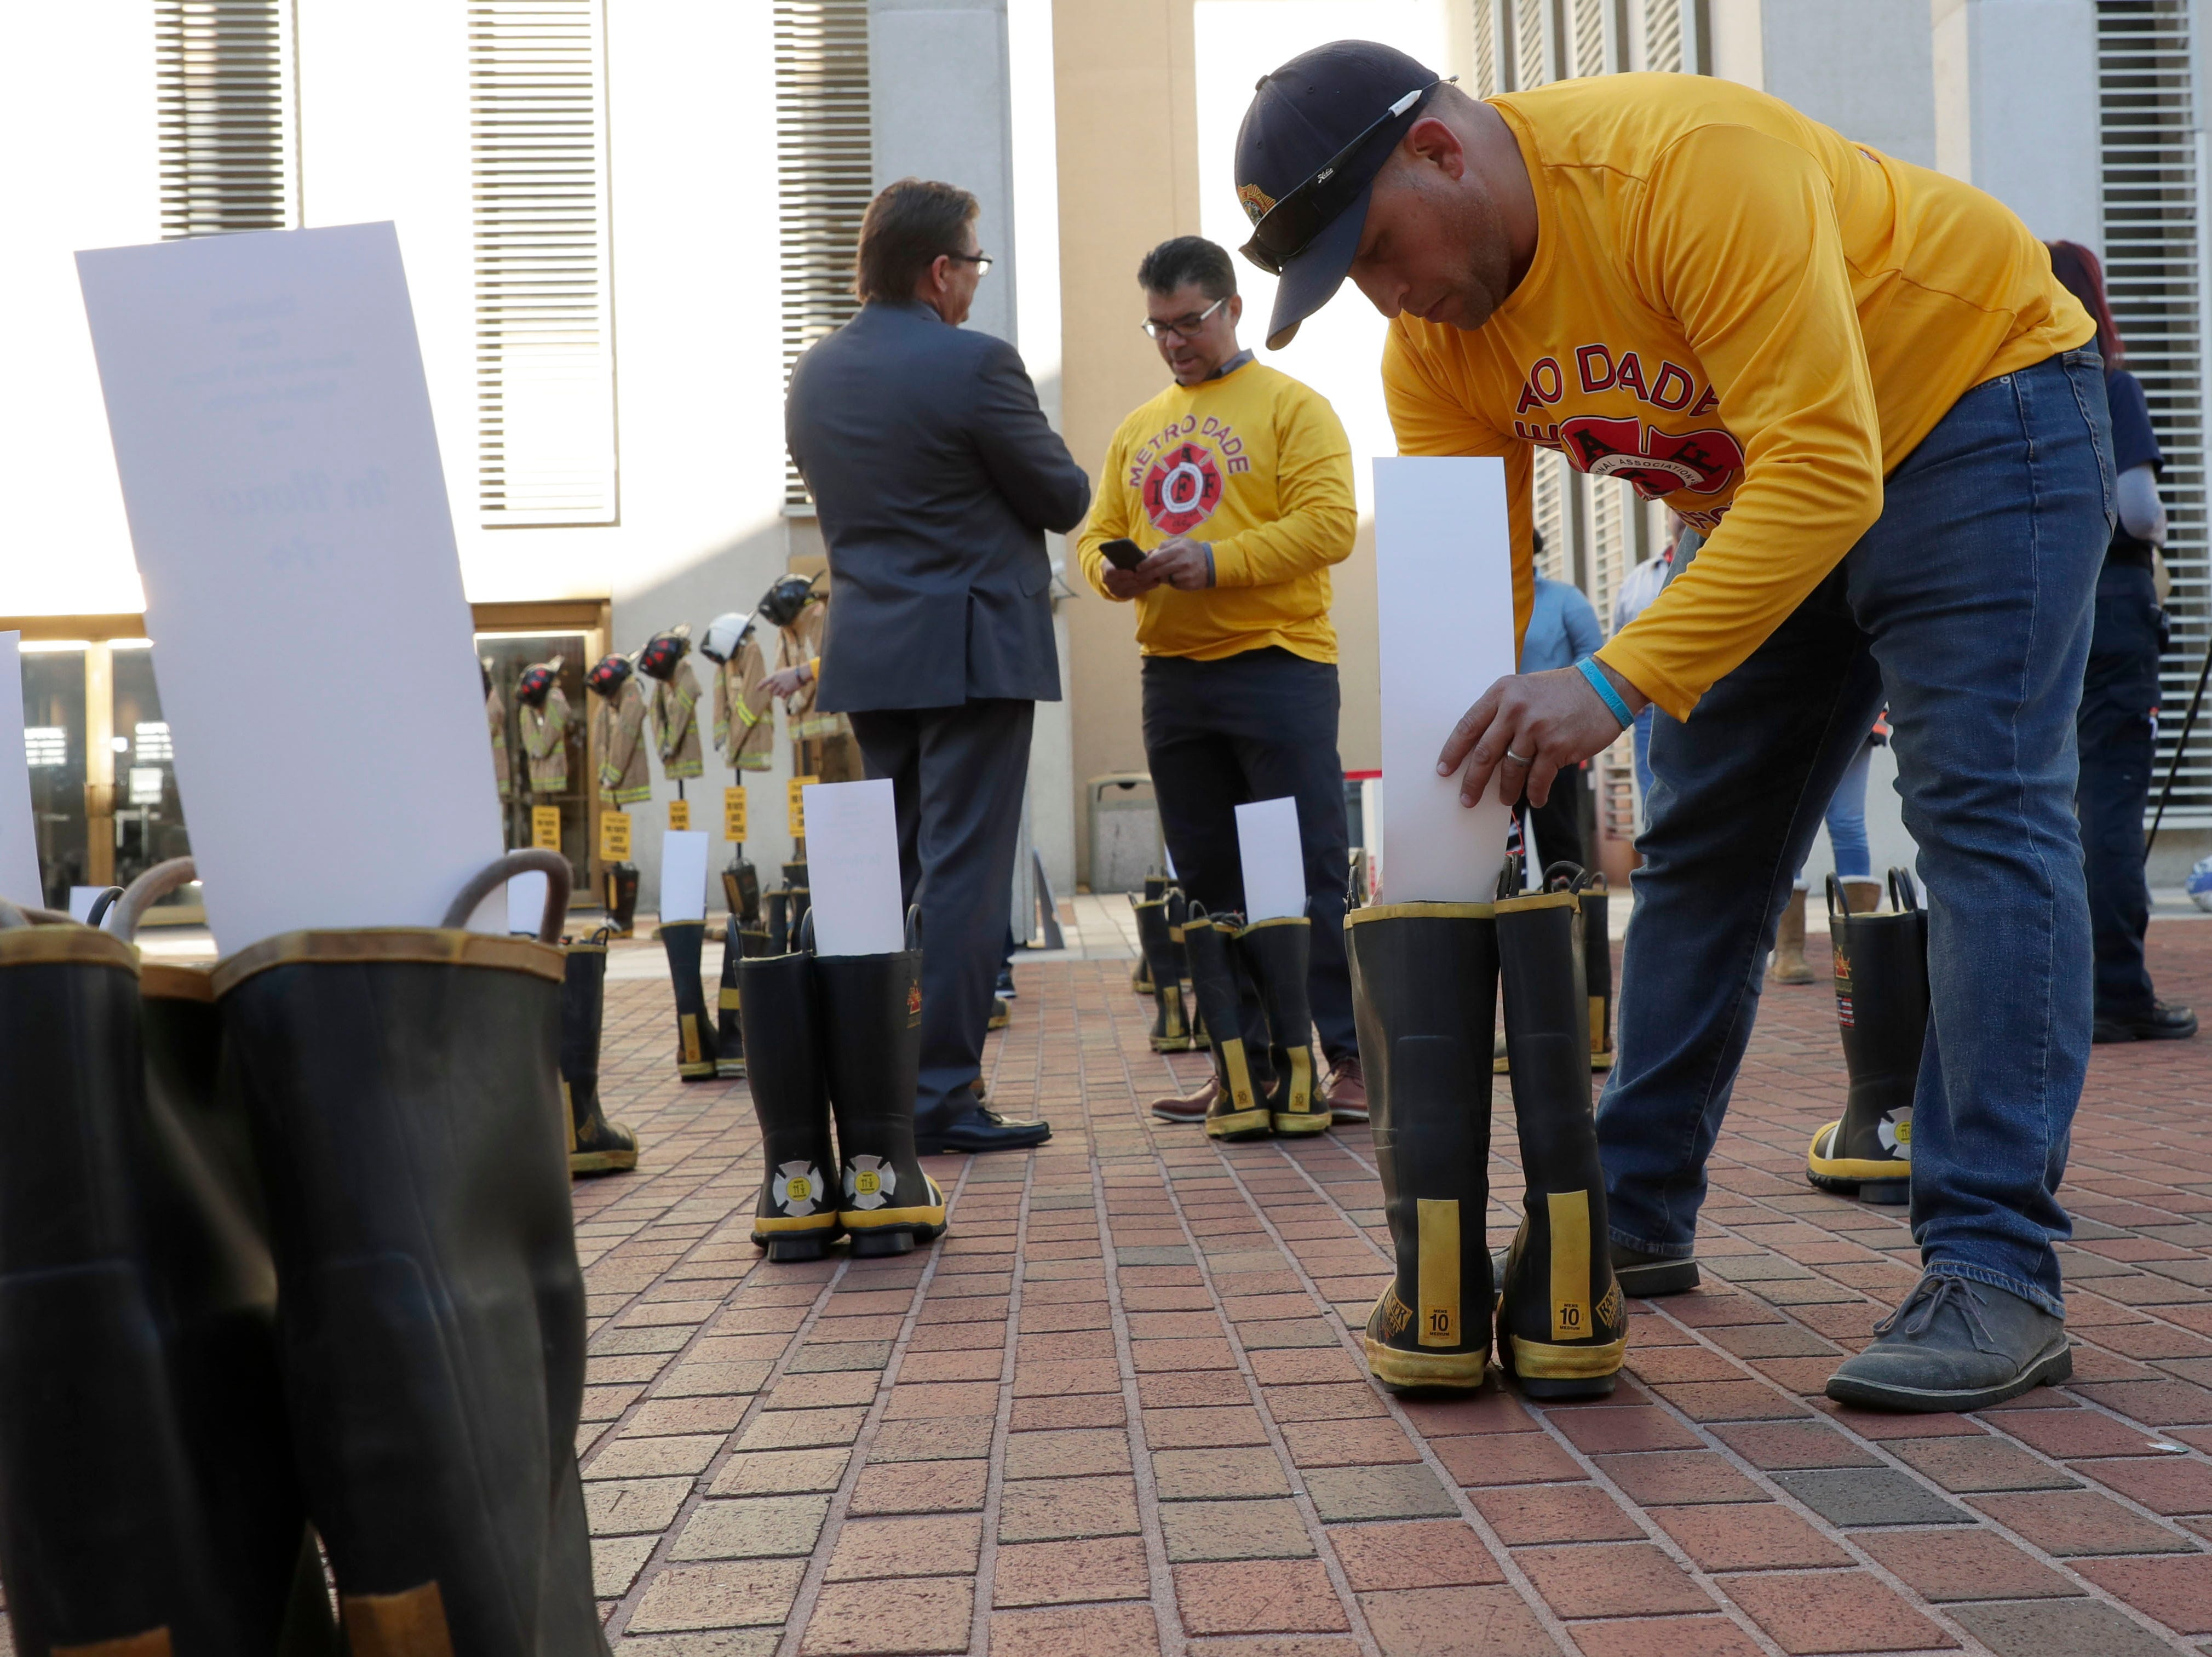 Felipe Lay, a firefighter with Miami-Dade Local 1403, places a card honoring a firefighter battling cancer in a boot. Firefighters and their families from around the state create a display at the Capitol of 500 pairs of boots in honor of firefighters who lost their battle or are battling with cancer caused from smoke inhalation and carcinogens Thursday, March 7, 2019. The state of Florida is one of five states in the country that does not have a bill acknowledging cancer is a job-related illness.